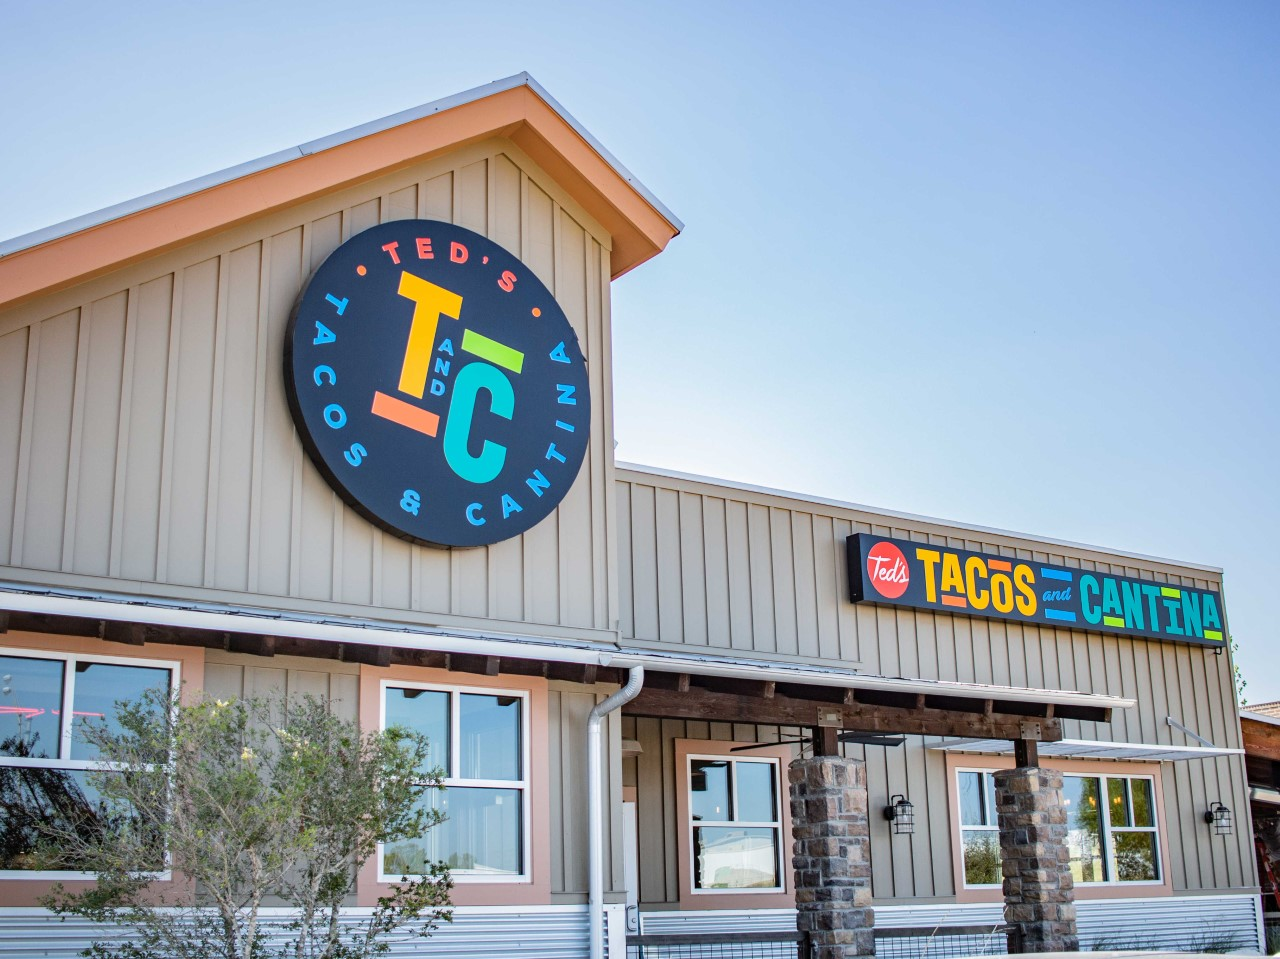 Ted's Tacos and Cantina